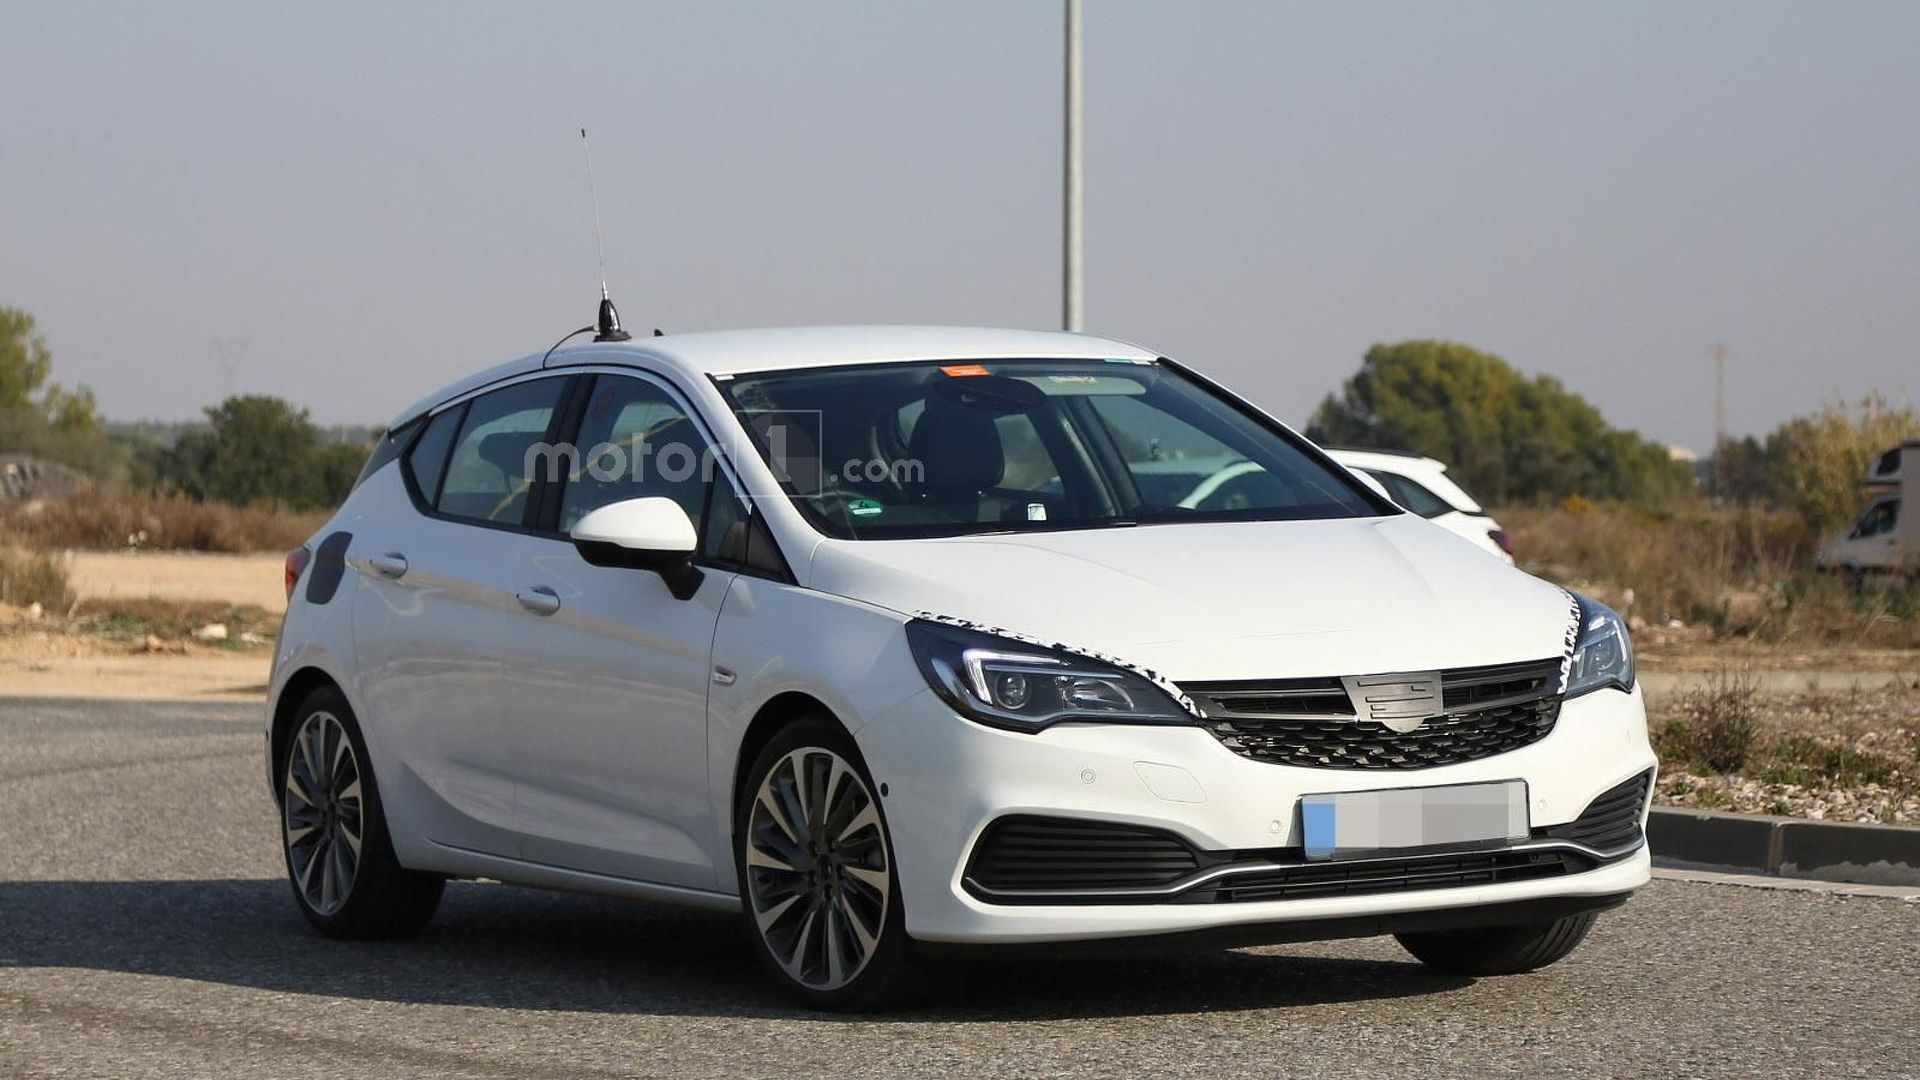 2016 Opel Astra GSI spied, could have 250 hp